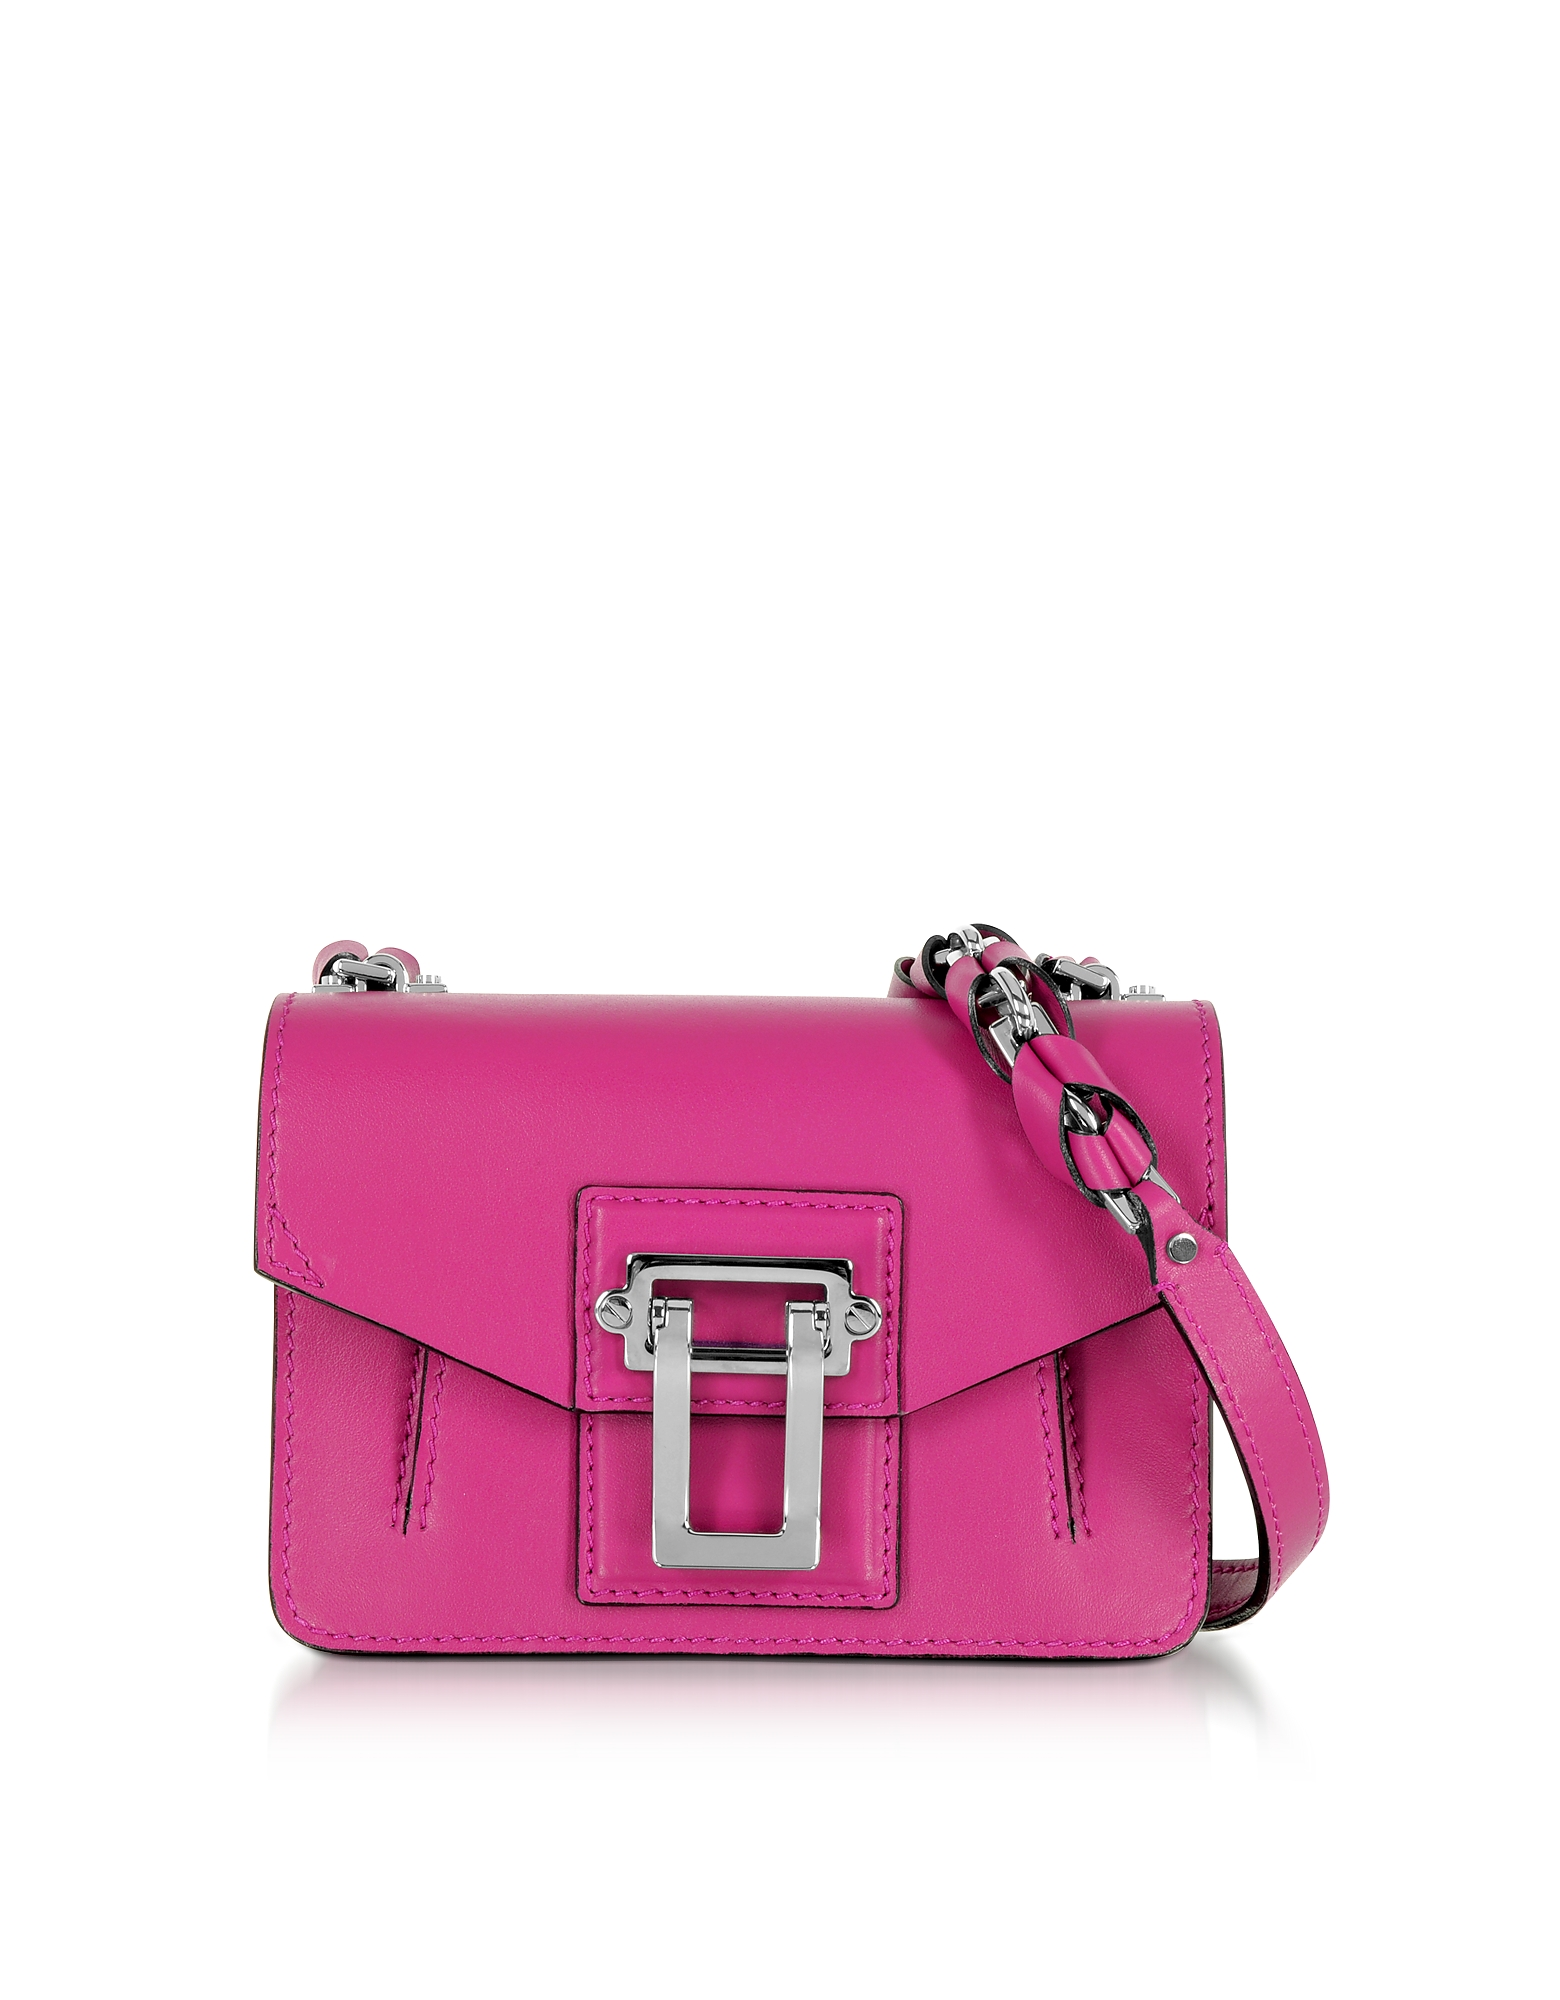 Proenza Schouler Handbags, Hava Chain Peony Smooth Leather Crossbody Bag w/Whipstitch